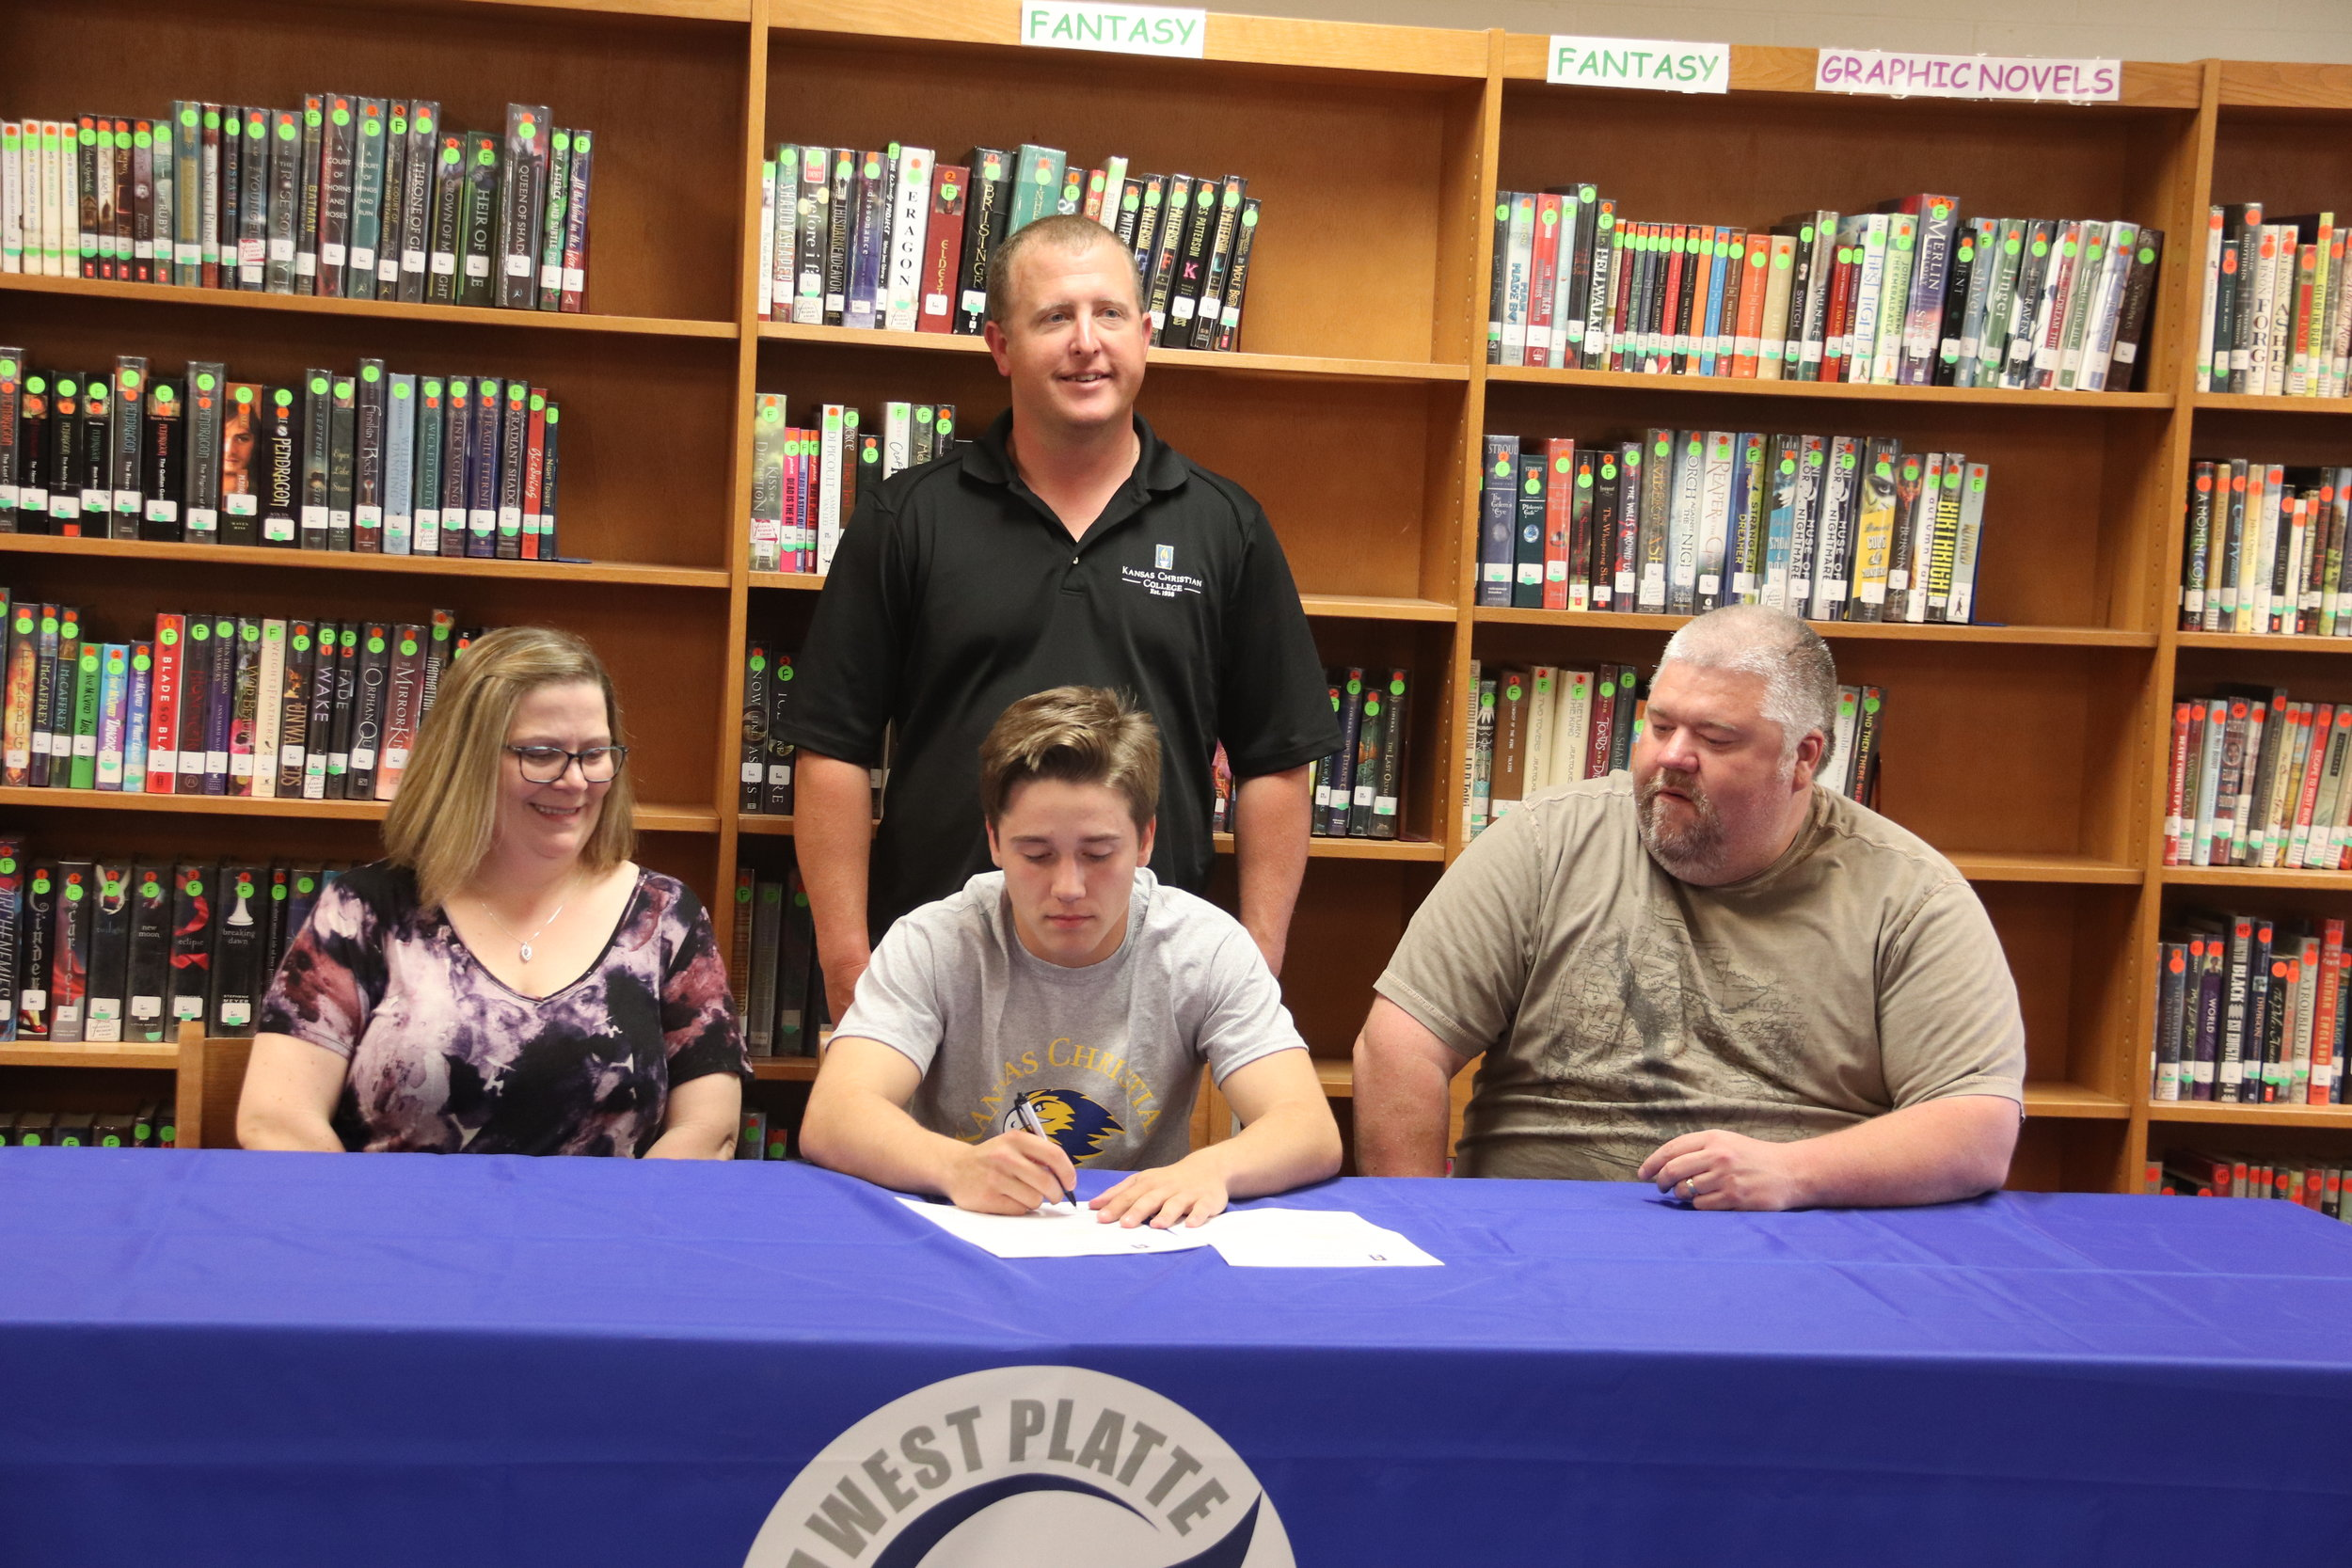 CODY THORN/Citizen photo  West Platte baseball player Gavin Davis, center, signs a letter of intent to compete at Kansas Christian College. Davis is flanked by his parents Carol and Aaron Davis, while KCC coach Tony Hurla stands in the back.